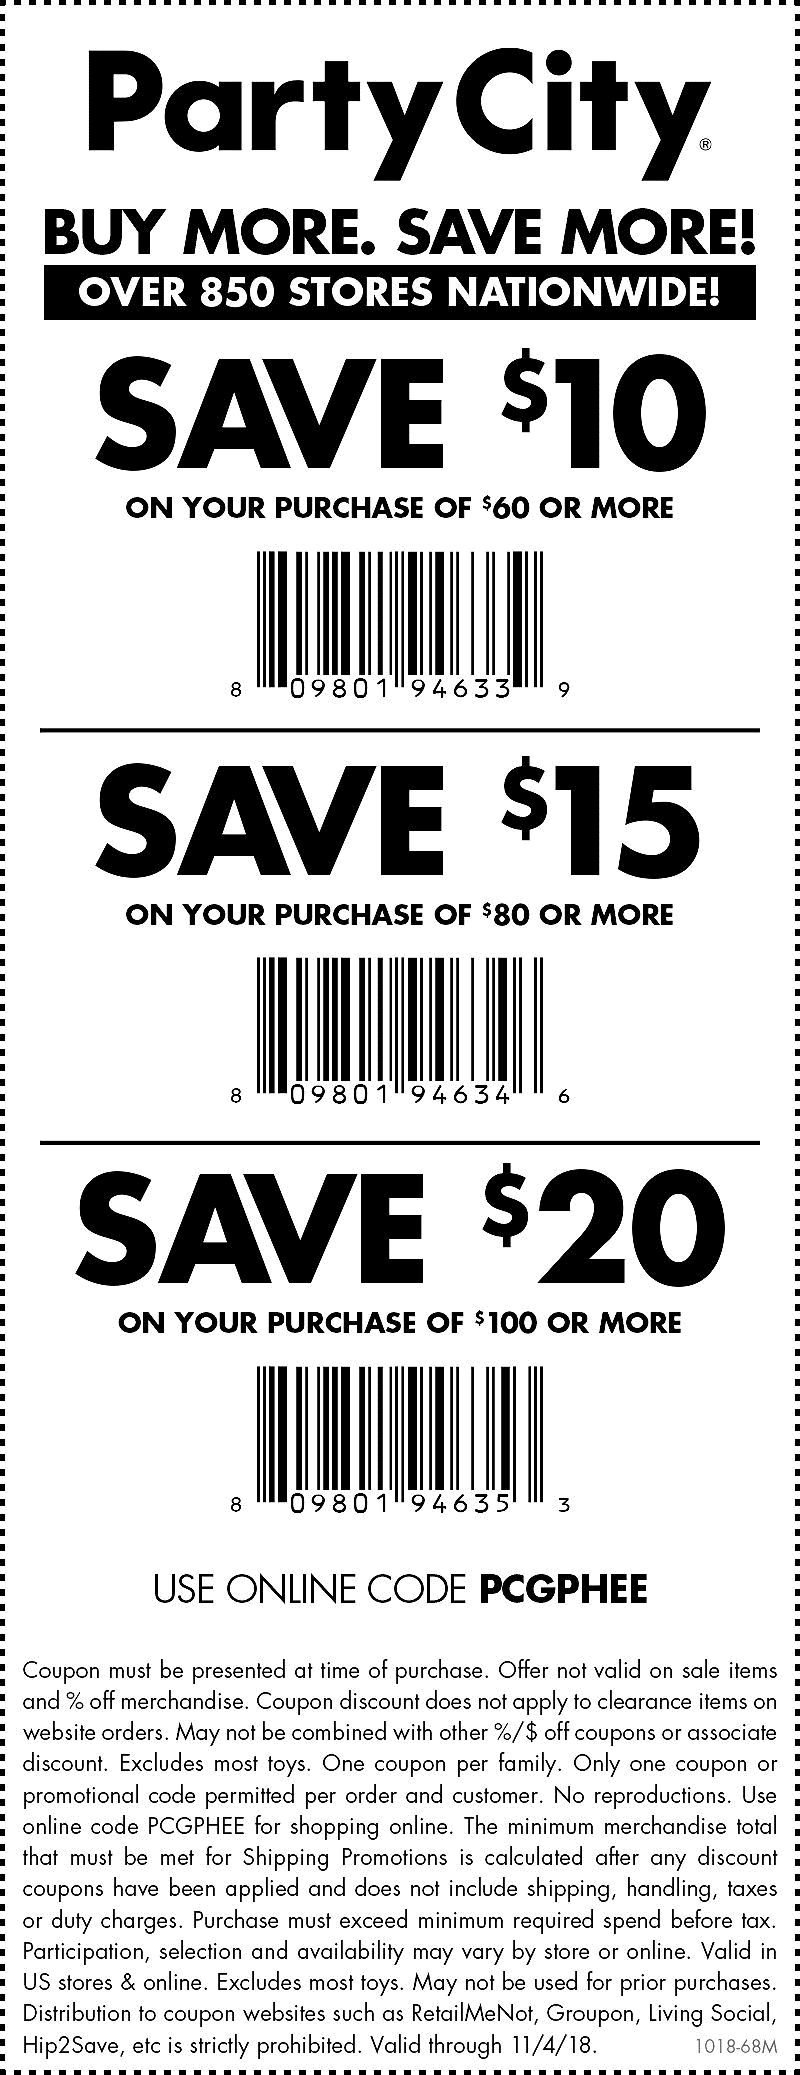 Party City Coupon October 2019 $10 off $60 at Party City, or online via promo code PCGPHEE